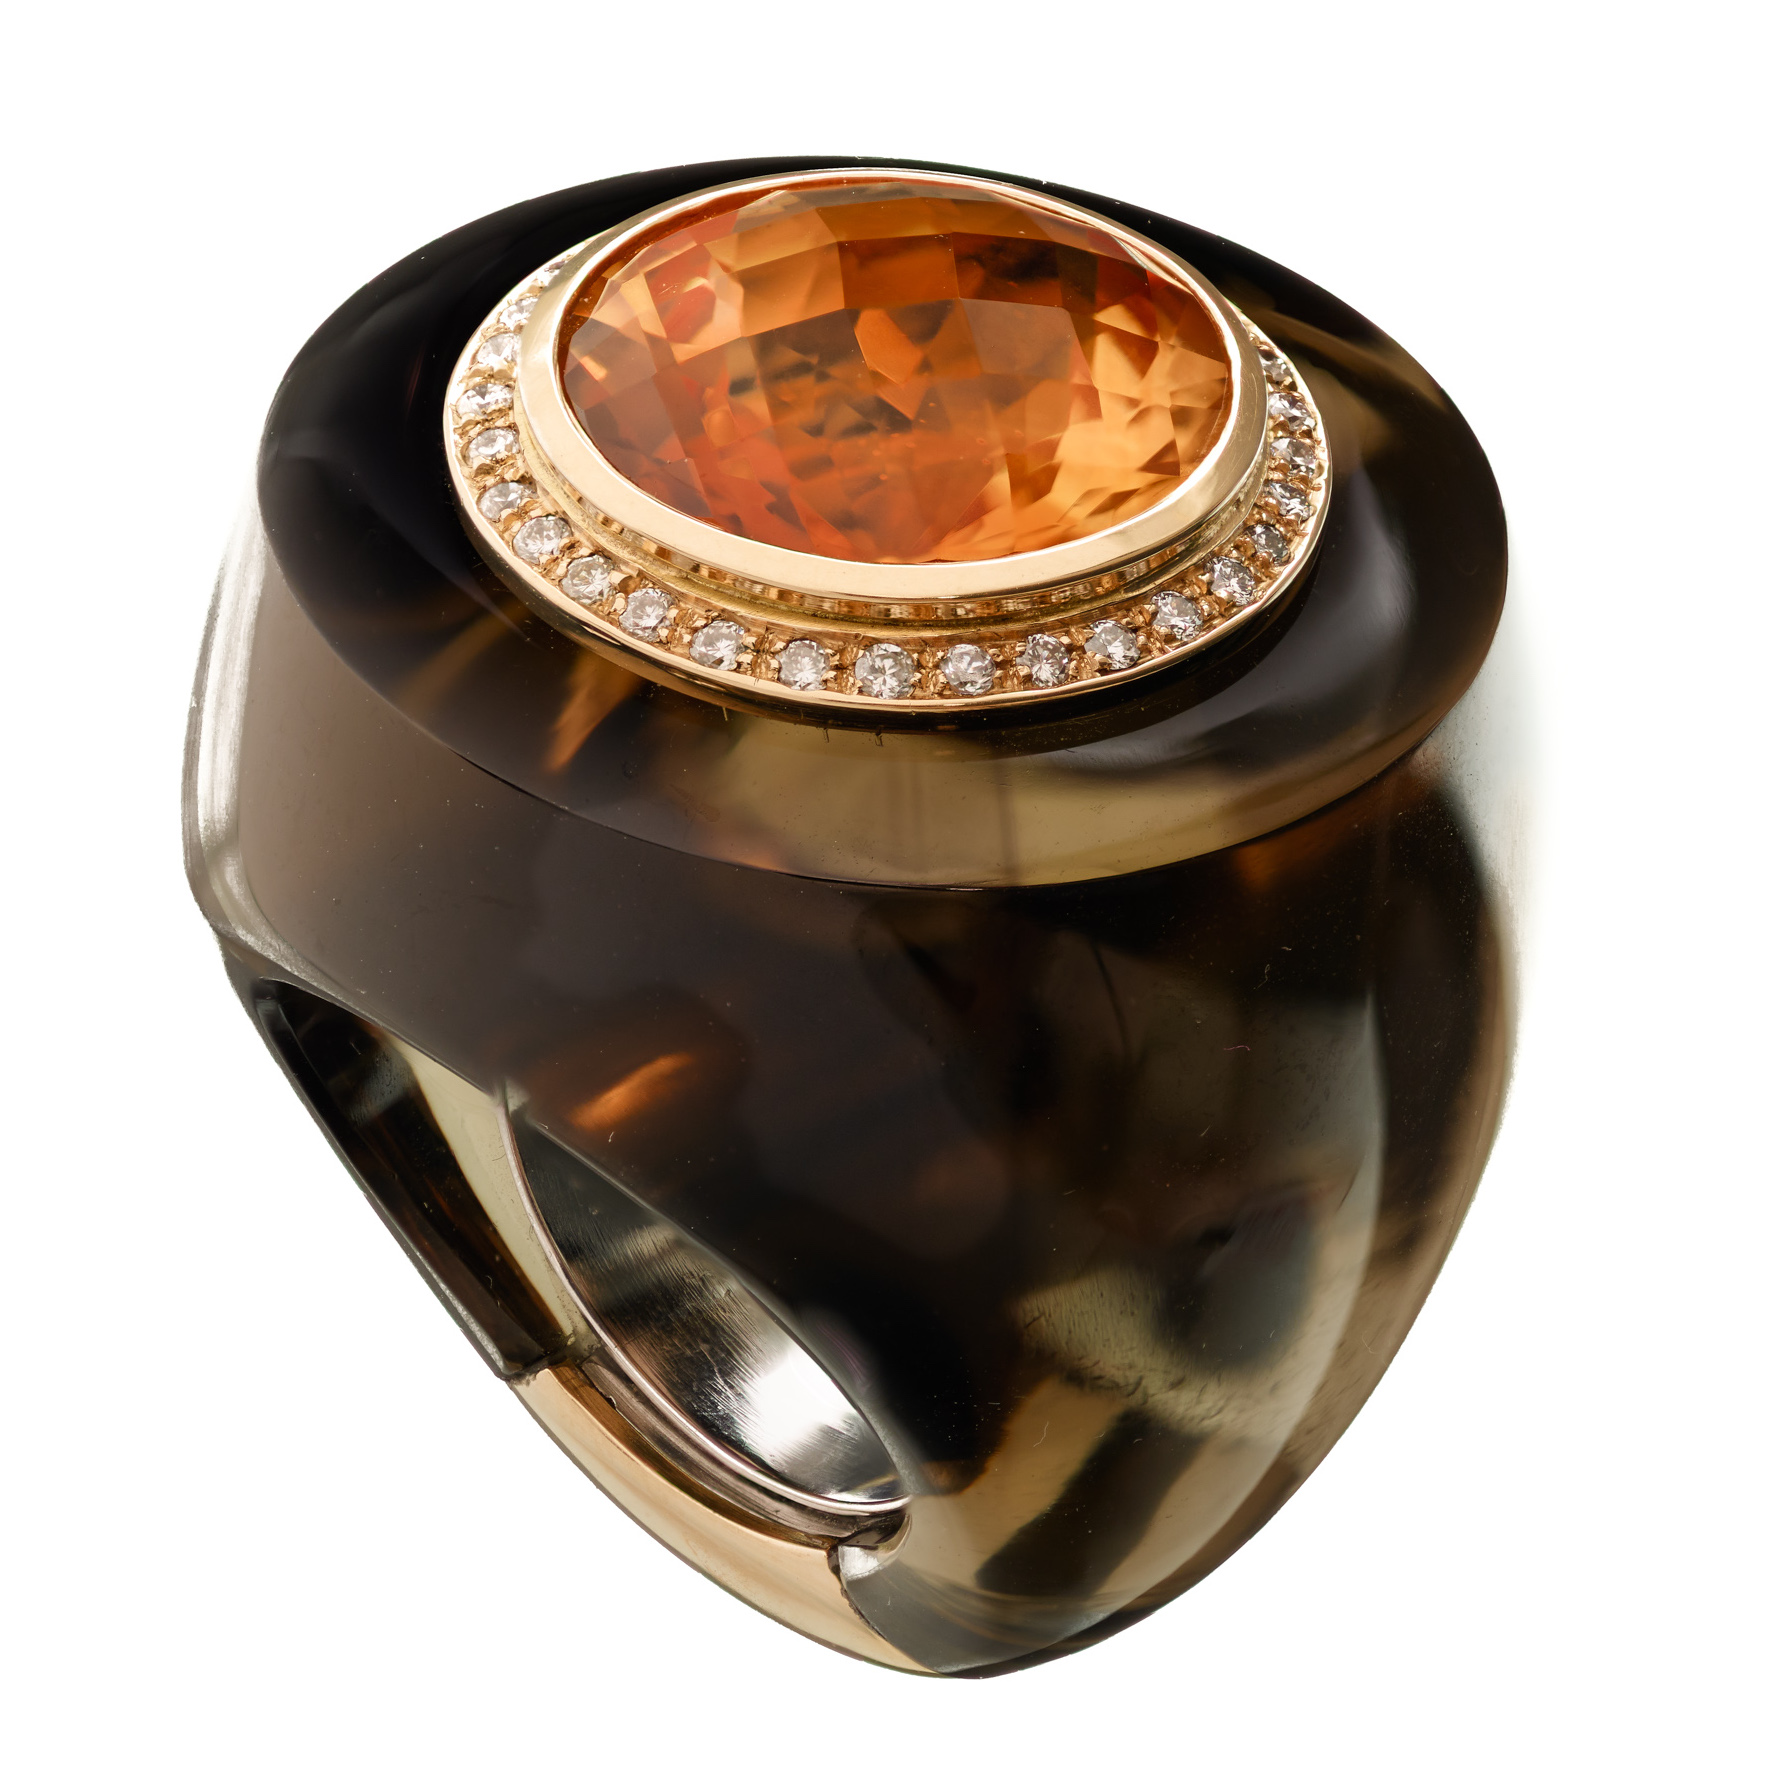 Sanalitro smoky quartz and citrine Barrel ring | JCK On Your Market